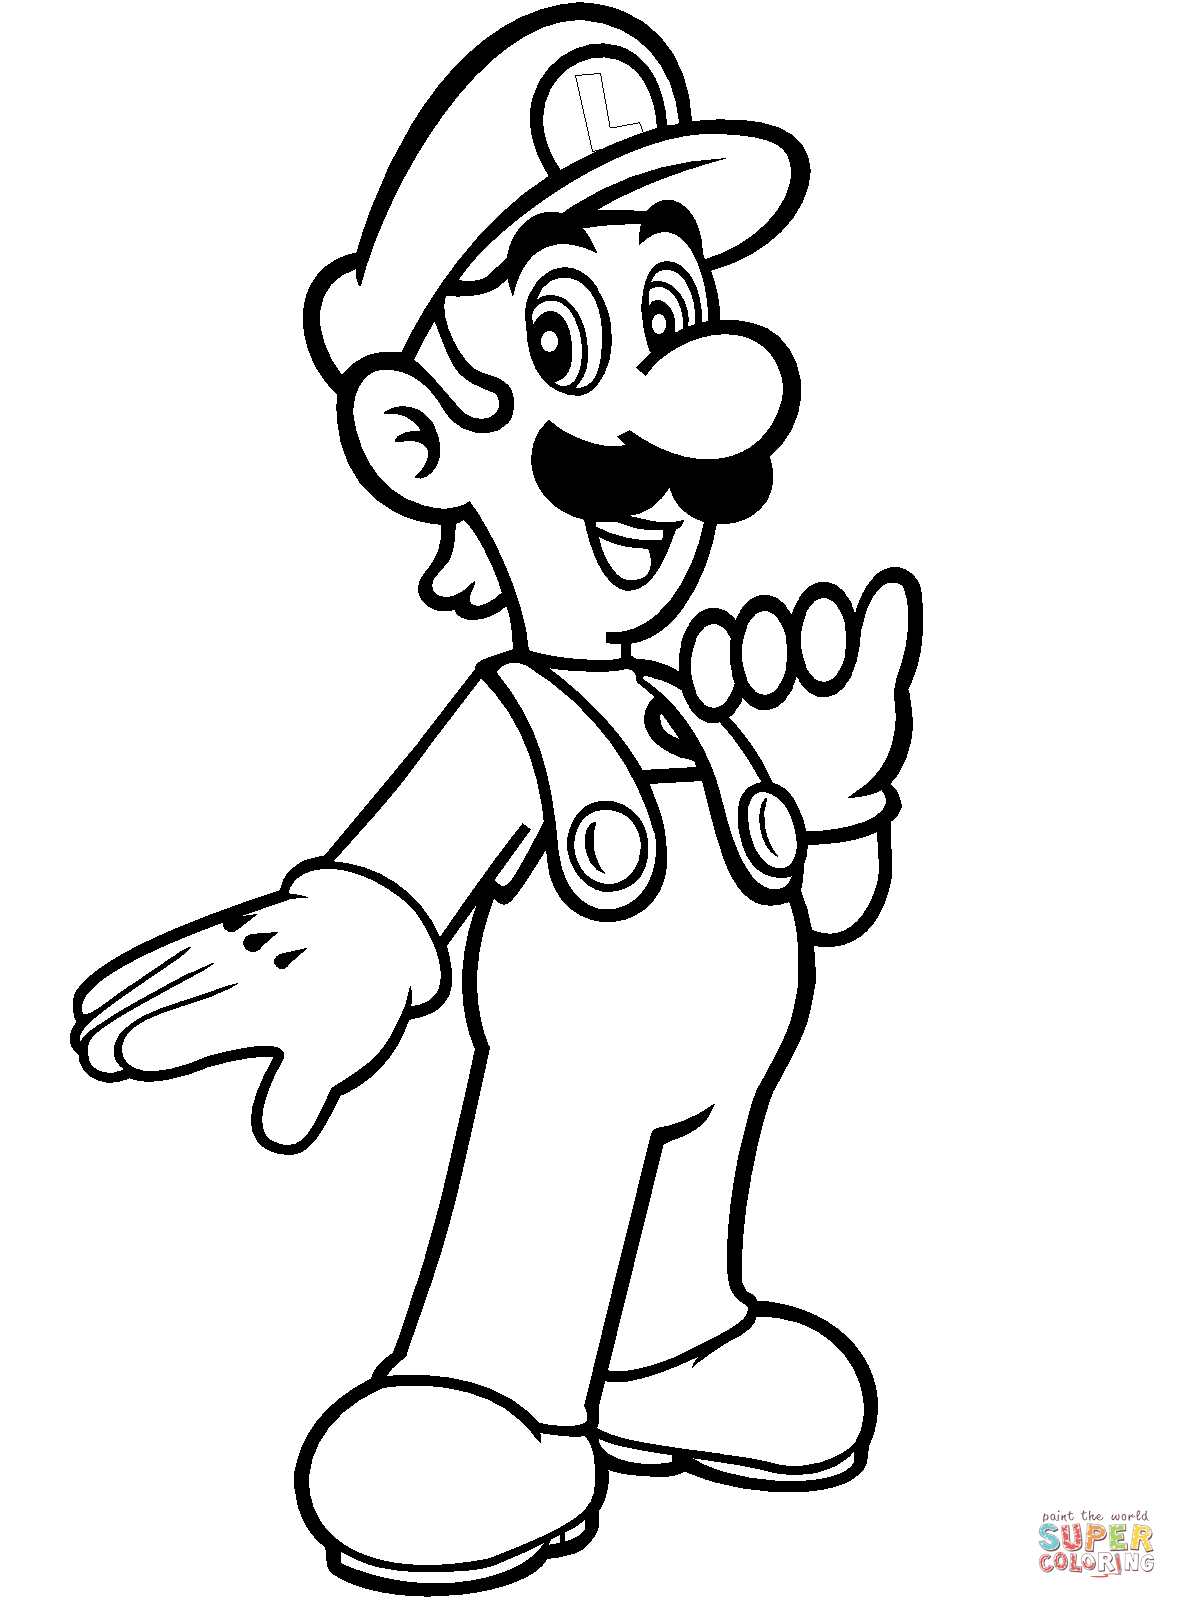 Super Mario Luigi Coloring Pages